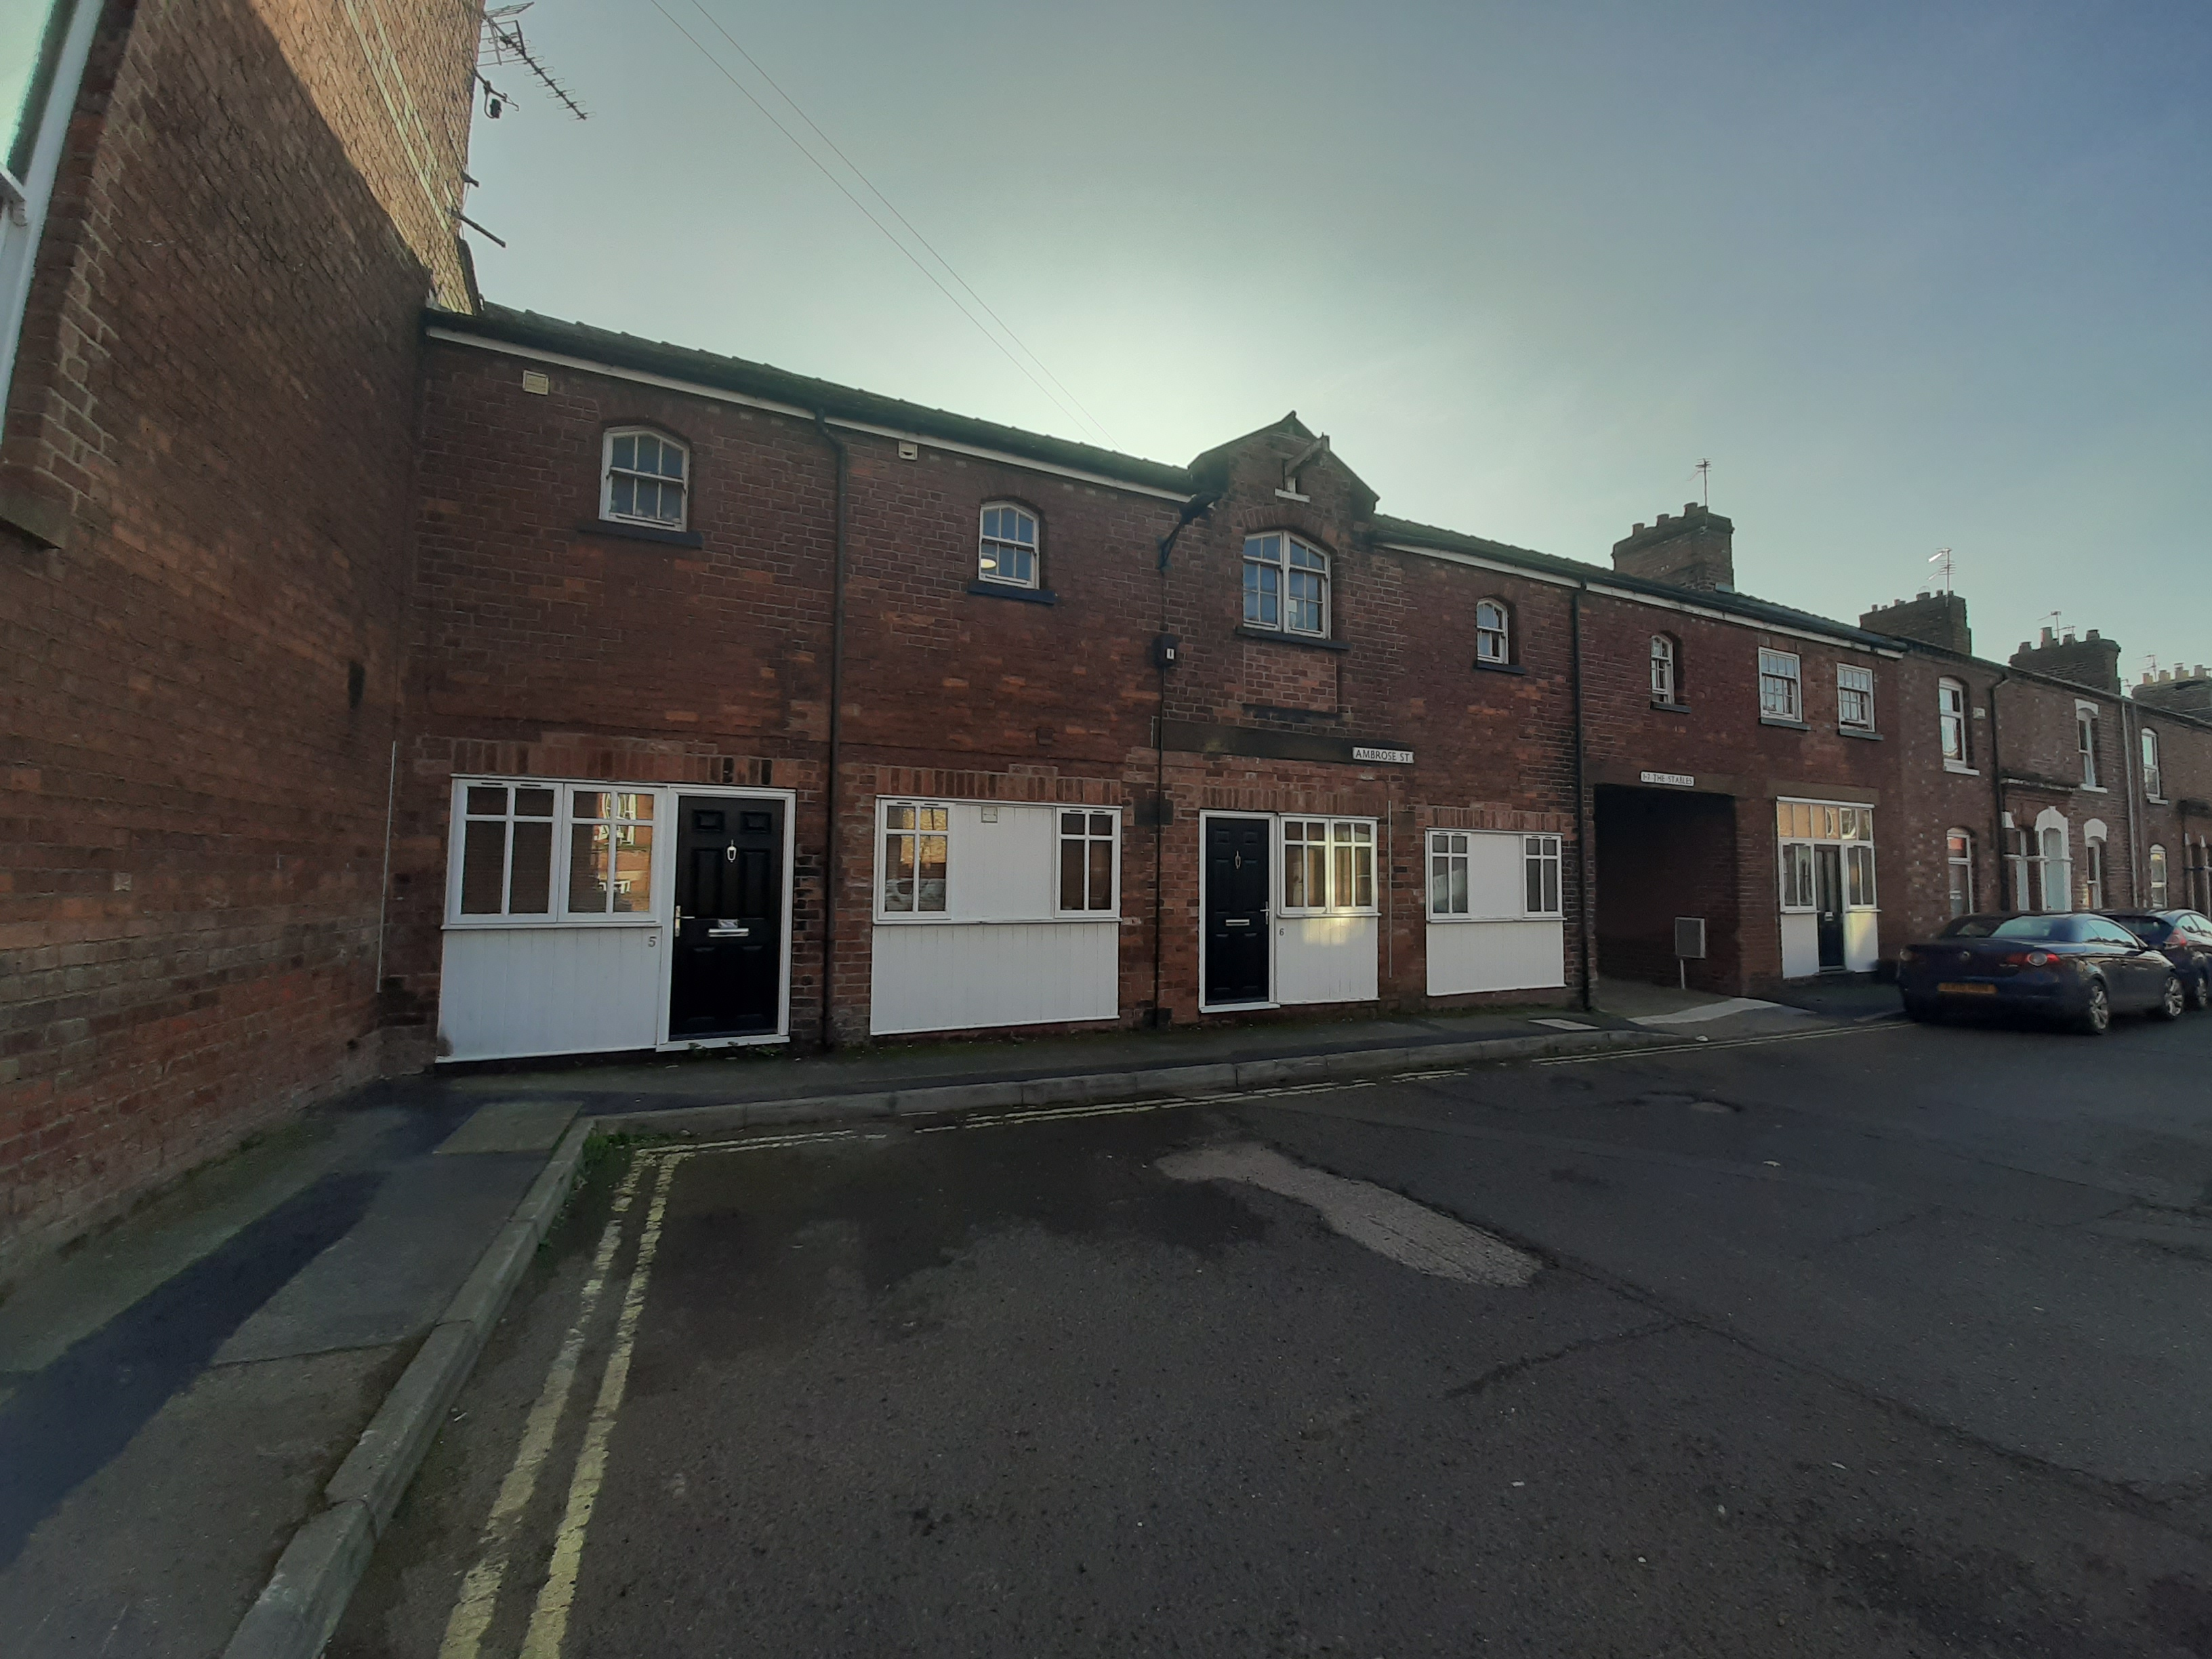 The Stables, Ambrose Street, Fulford, YO10 4ED